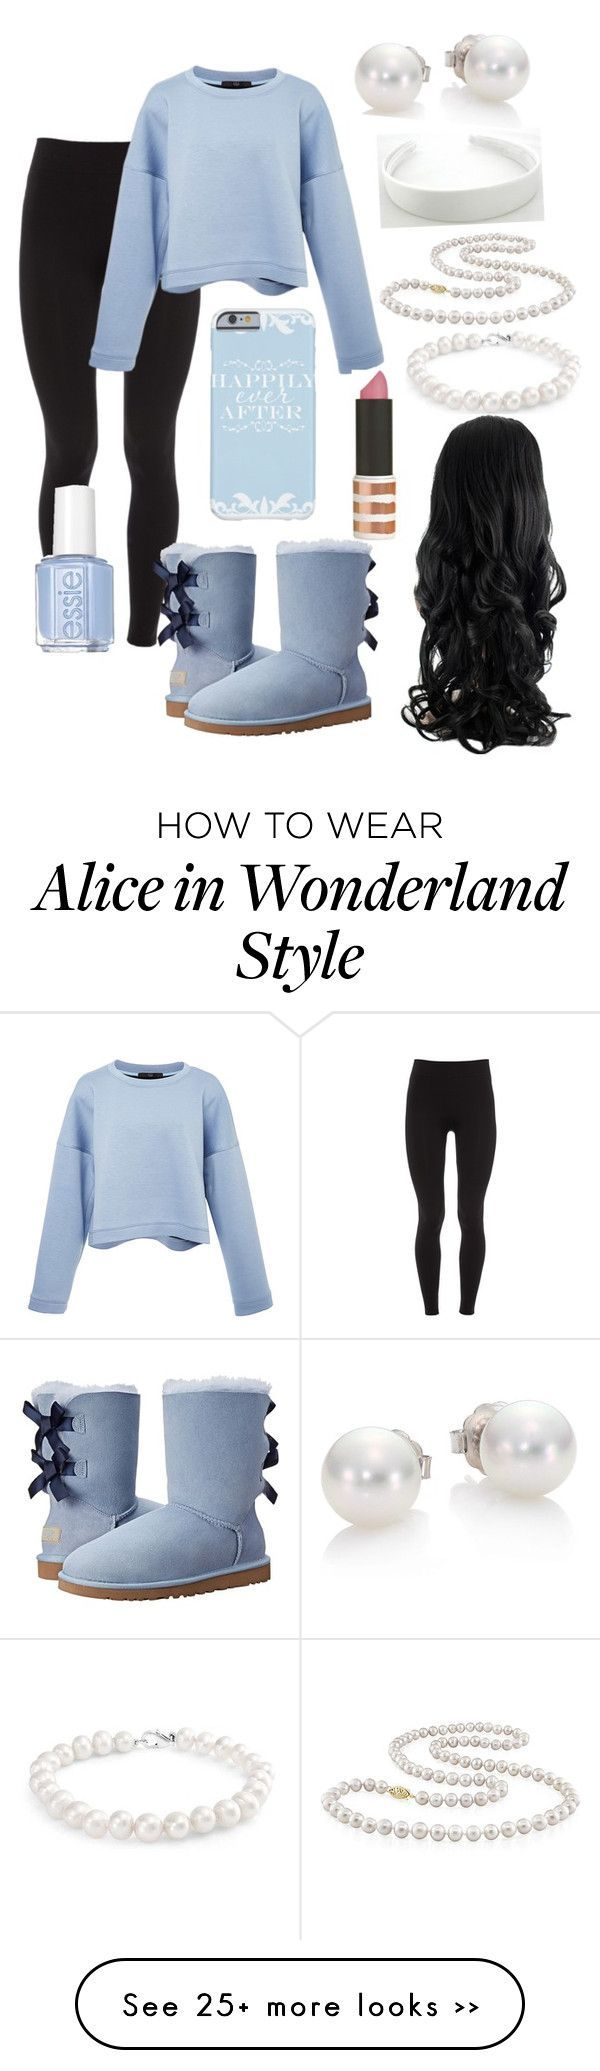 Winter wonderland by genova-was-here on Polyvore featuring Elie Tahari, UGG Australia, TIBI, Mikimoto, Topshop, Bling Jewelry, Miadora and Essie